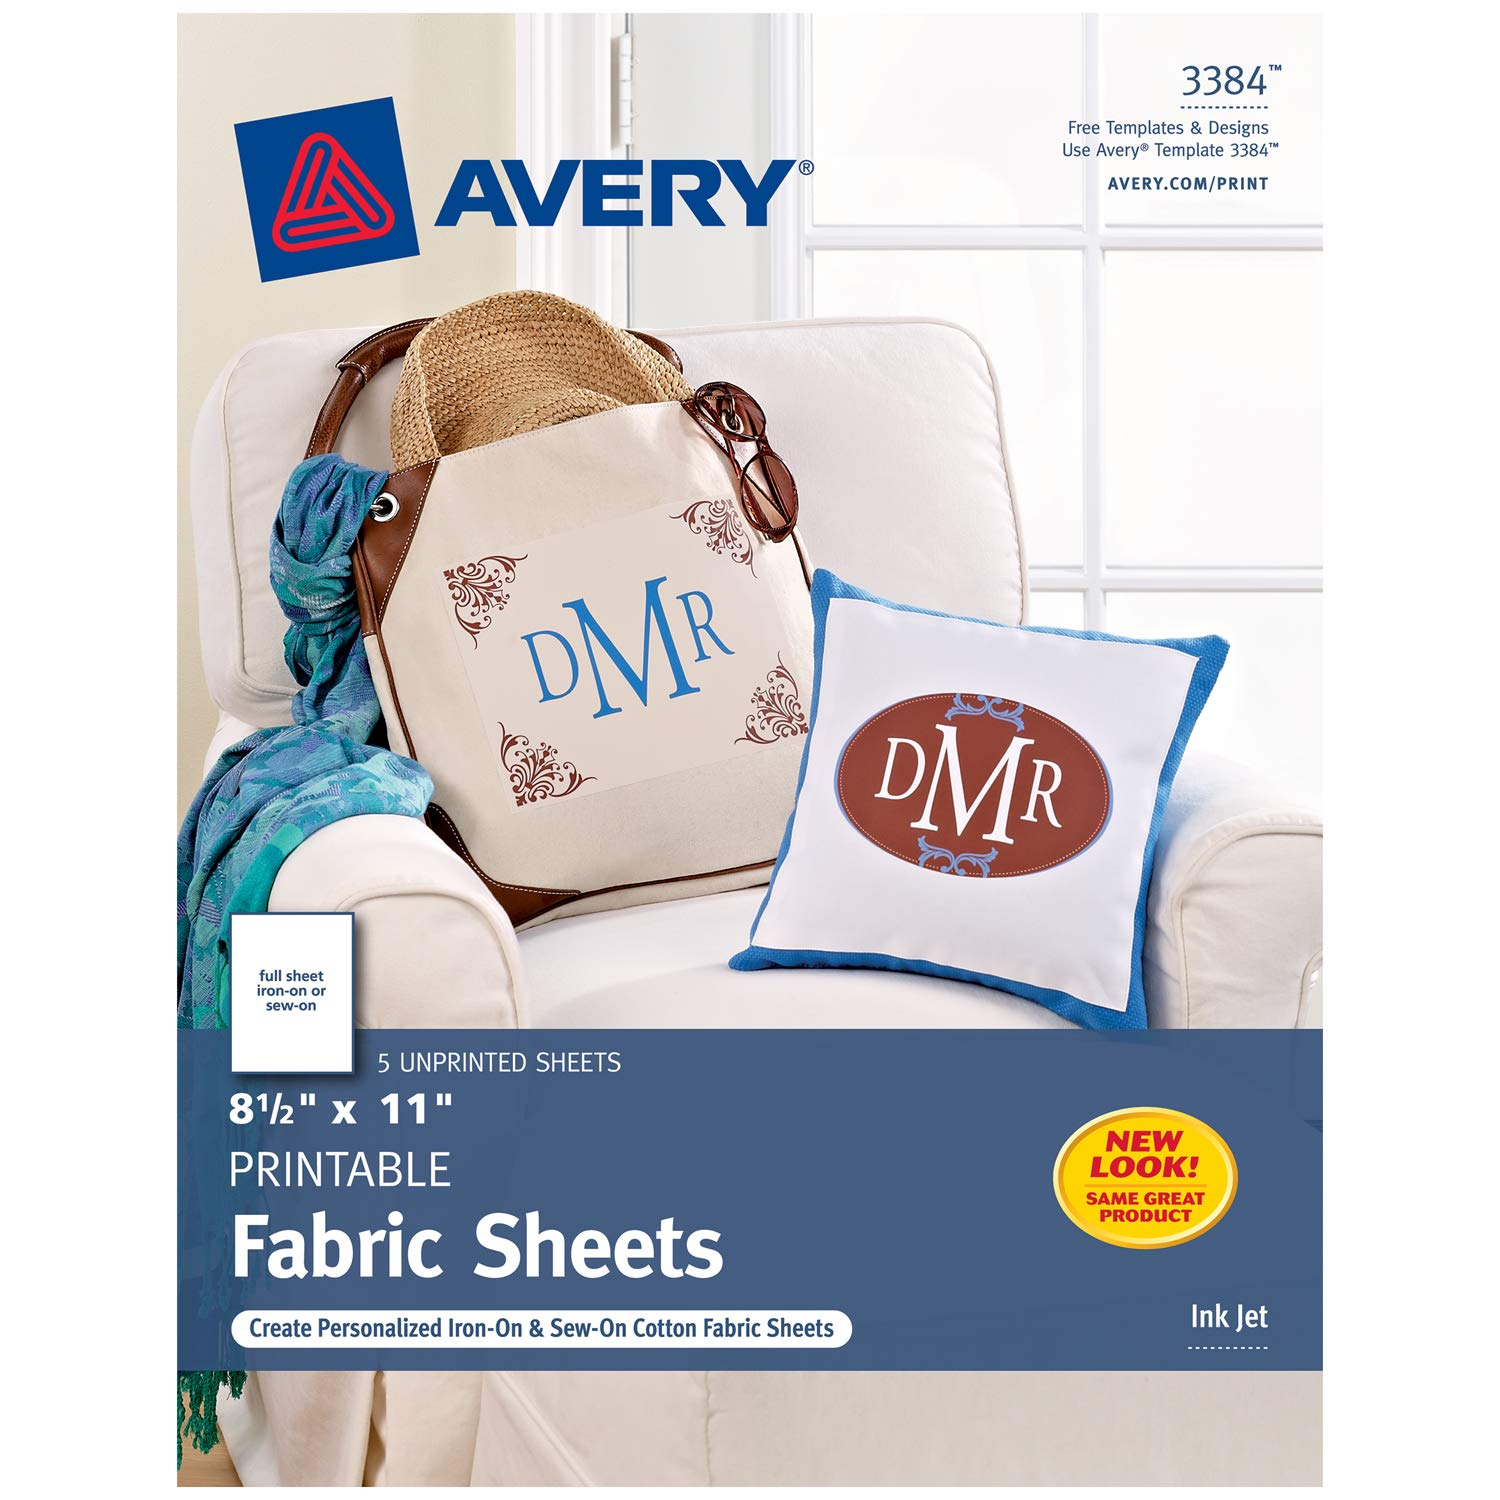 graphic regarding Printable Iron on Fabric known as Avery Printable Cloth, 8.5 x 11 Inches, Inkjet Printers, 5 Sheets (3384)